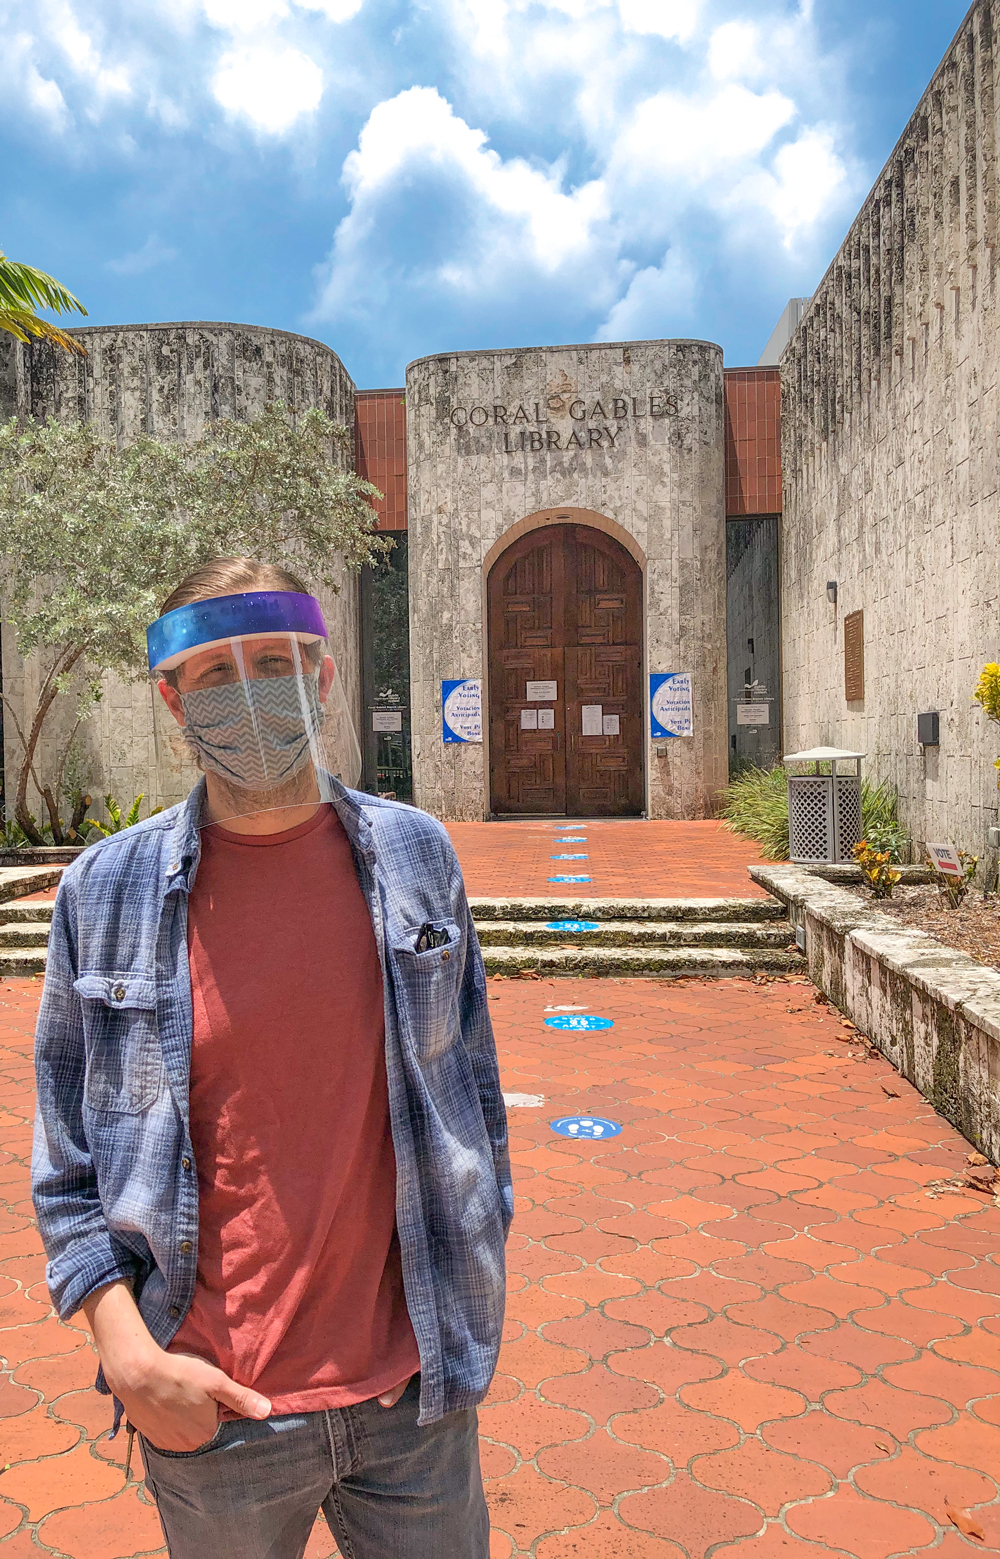 Wearing a Face Shield and Mask when voting at the polls in person at the august florida primary election 2020